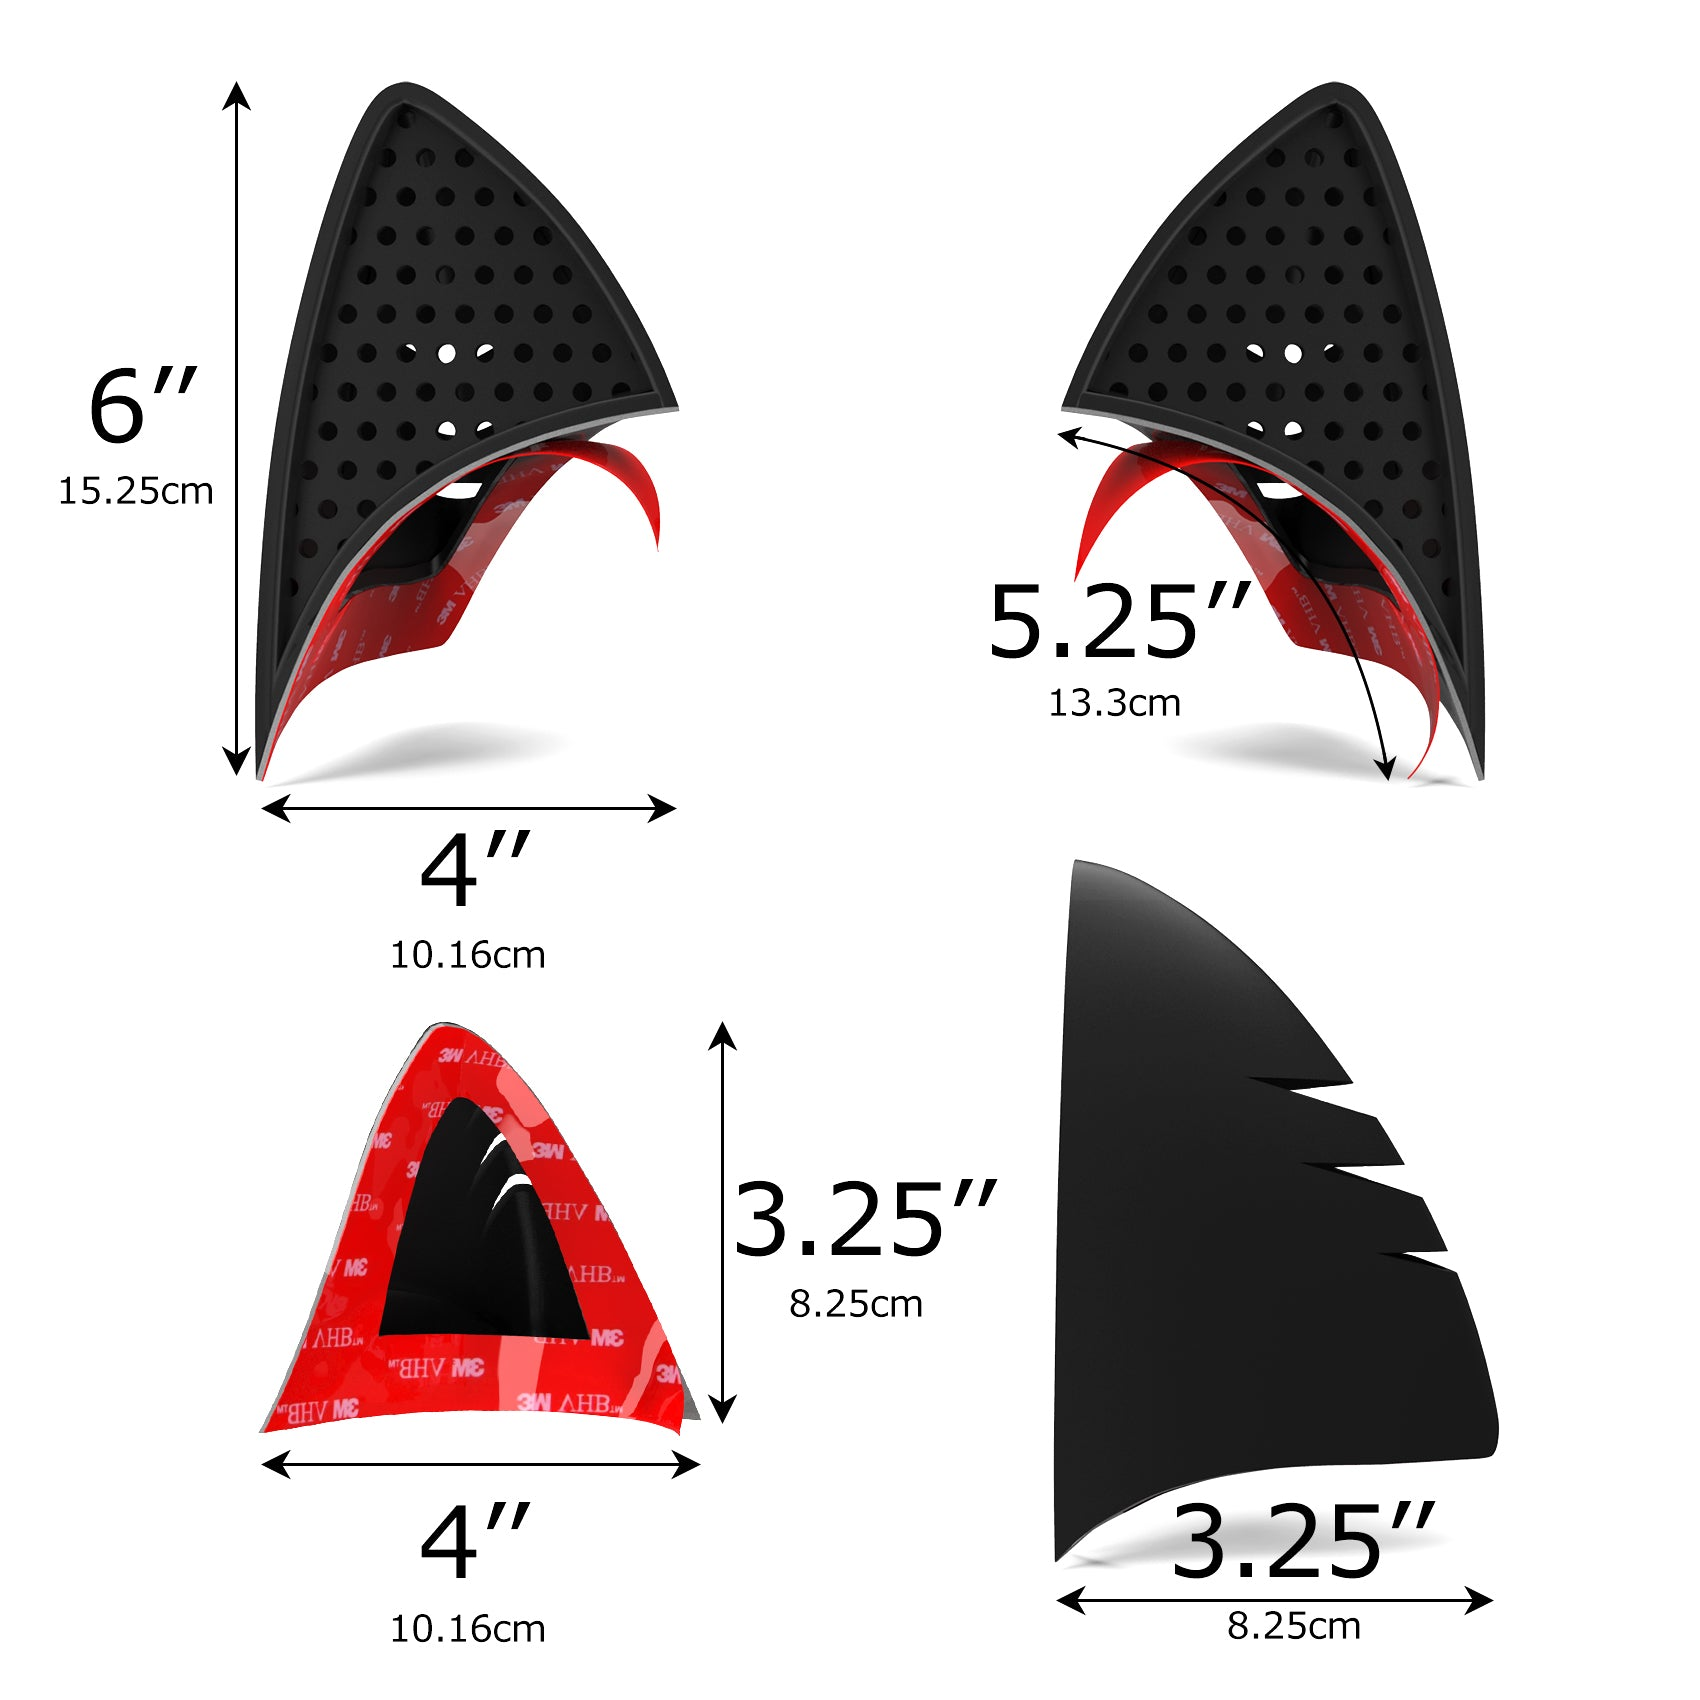 Cat Ear Helmet Upgrade: BLACK | Easy Peel-and-Stick Helmet Accessory with 5 Colored Decals included